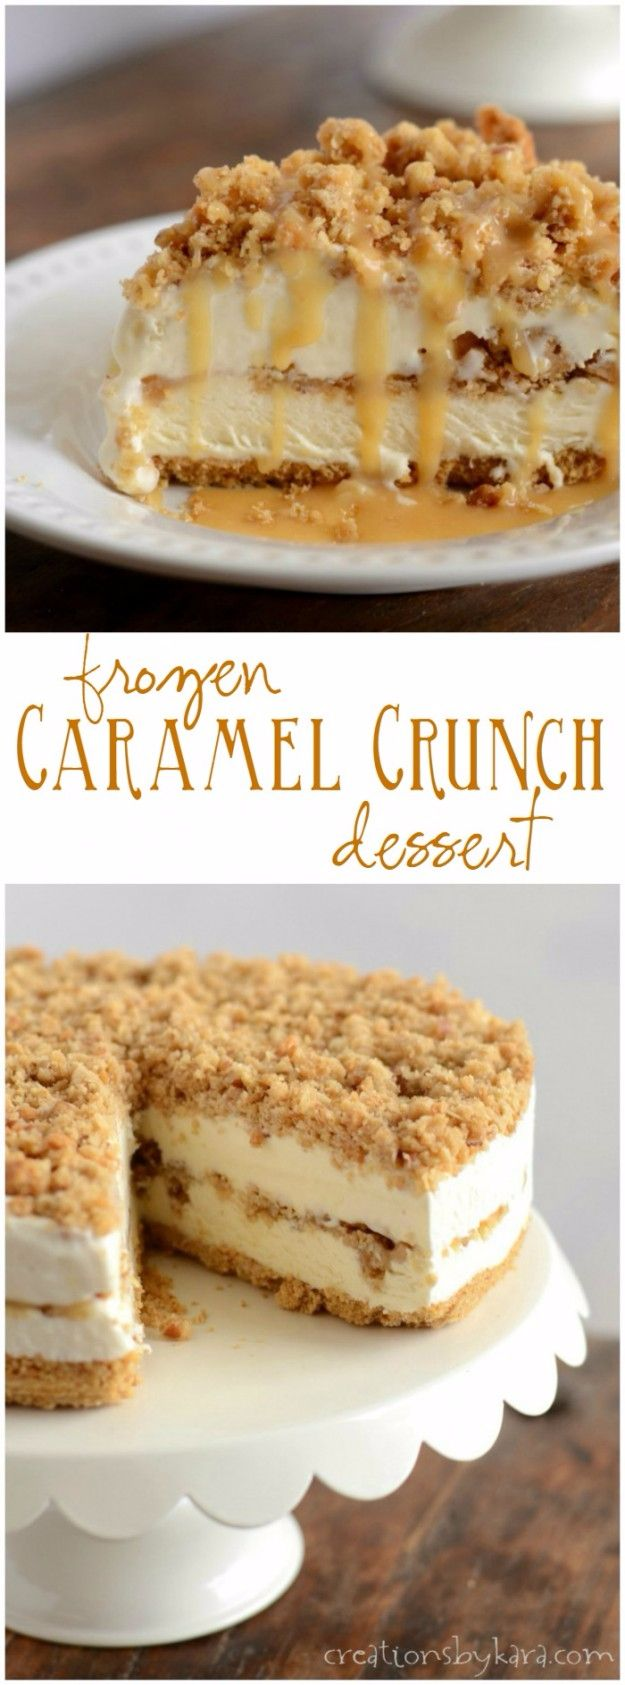 Best Recipe Ideas for Summer - Frozen Caramel Crunch Torte - Cool Salads, Easy Side Dishes, Recipes for Summer Foods and Dinner to Beat the Heat - Light and Healthy Ideas for Hot Summer Nights, Pool Parties and Picnics http://diyjoy.com/best-recipes-summer